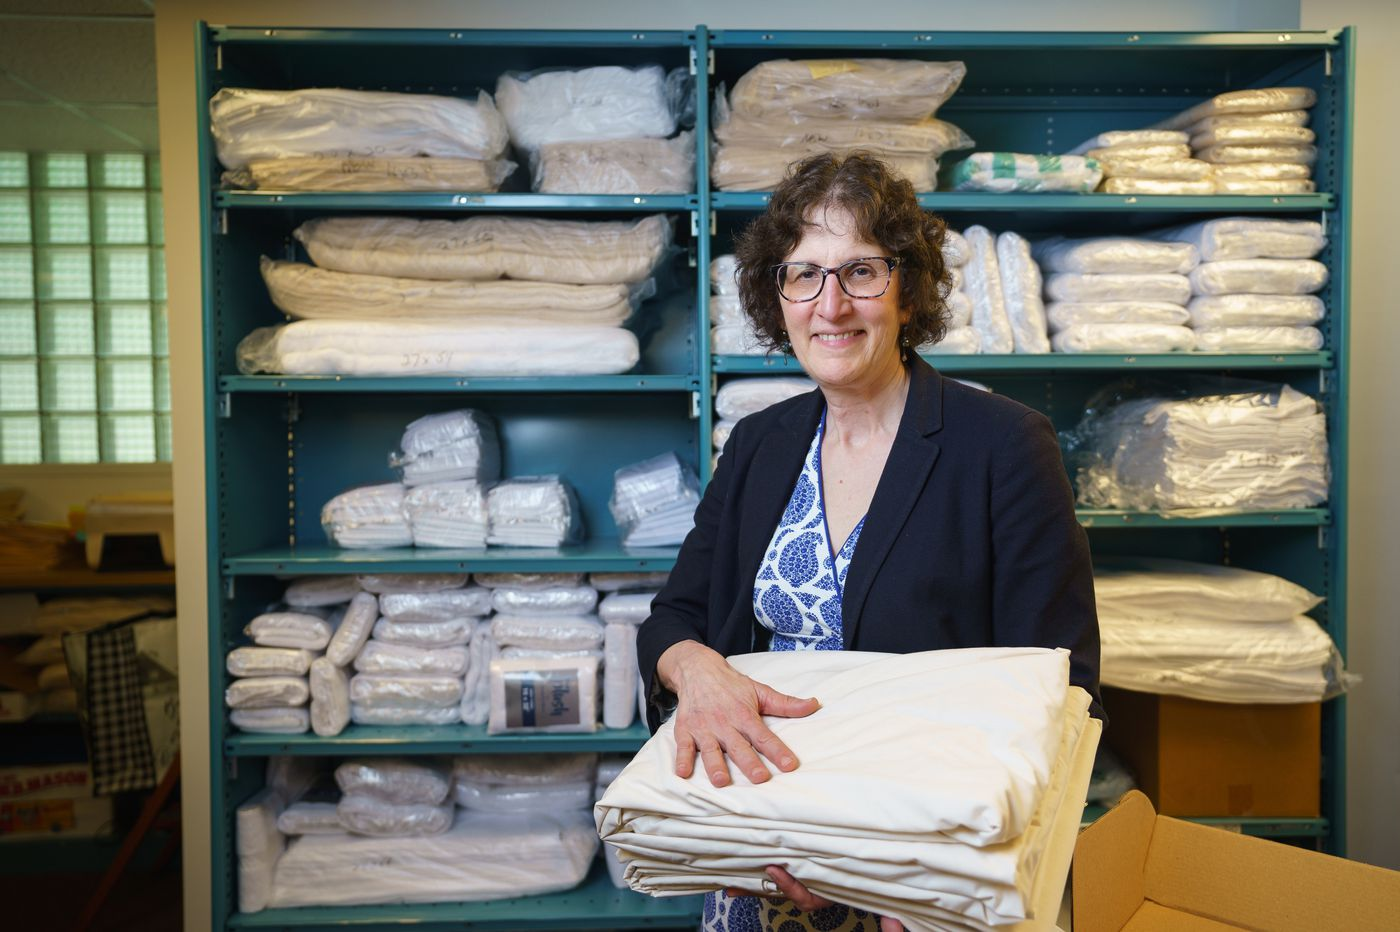 Dreaming big: Why she's leading her family's old wholesale bedding business into 'scary' change online